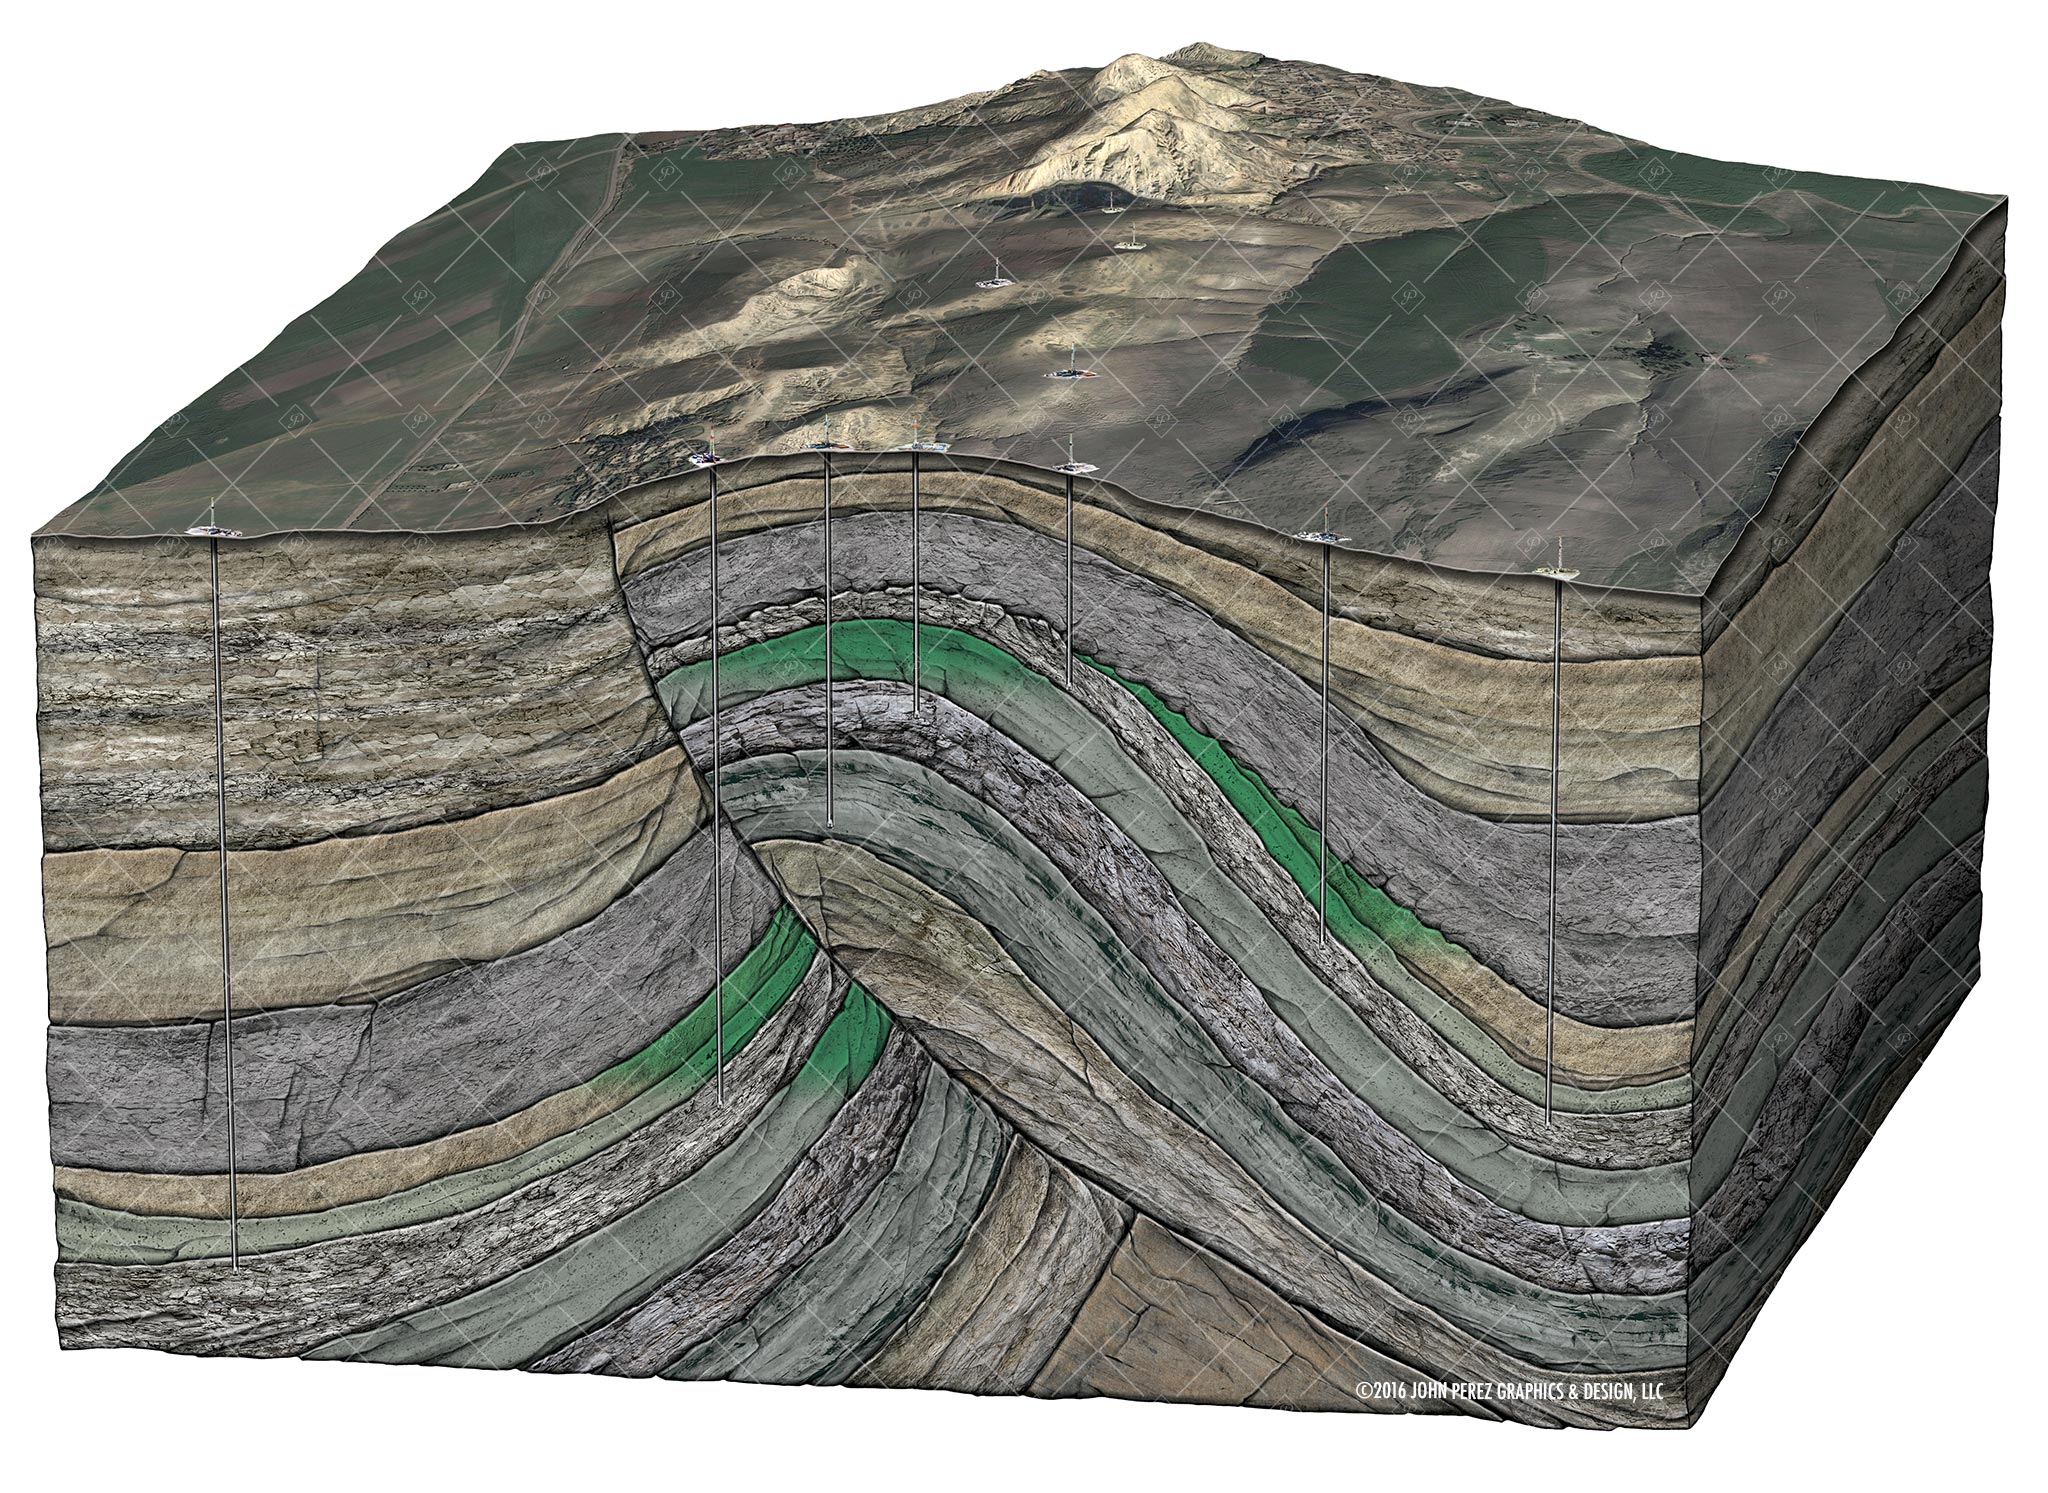 john perez graphics, Mountainous Region diagram, fault Schematic, oil and gas graphics, oil and gas schematics, drilling geology,